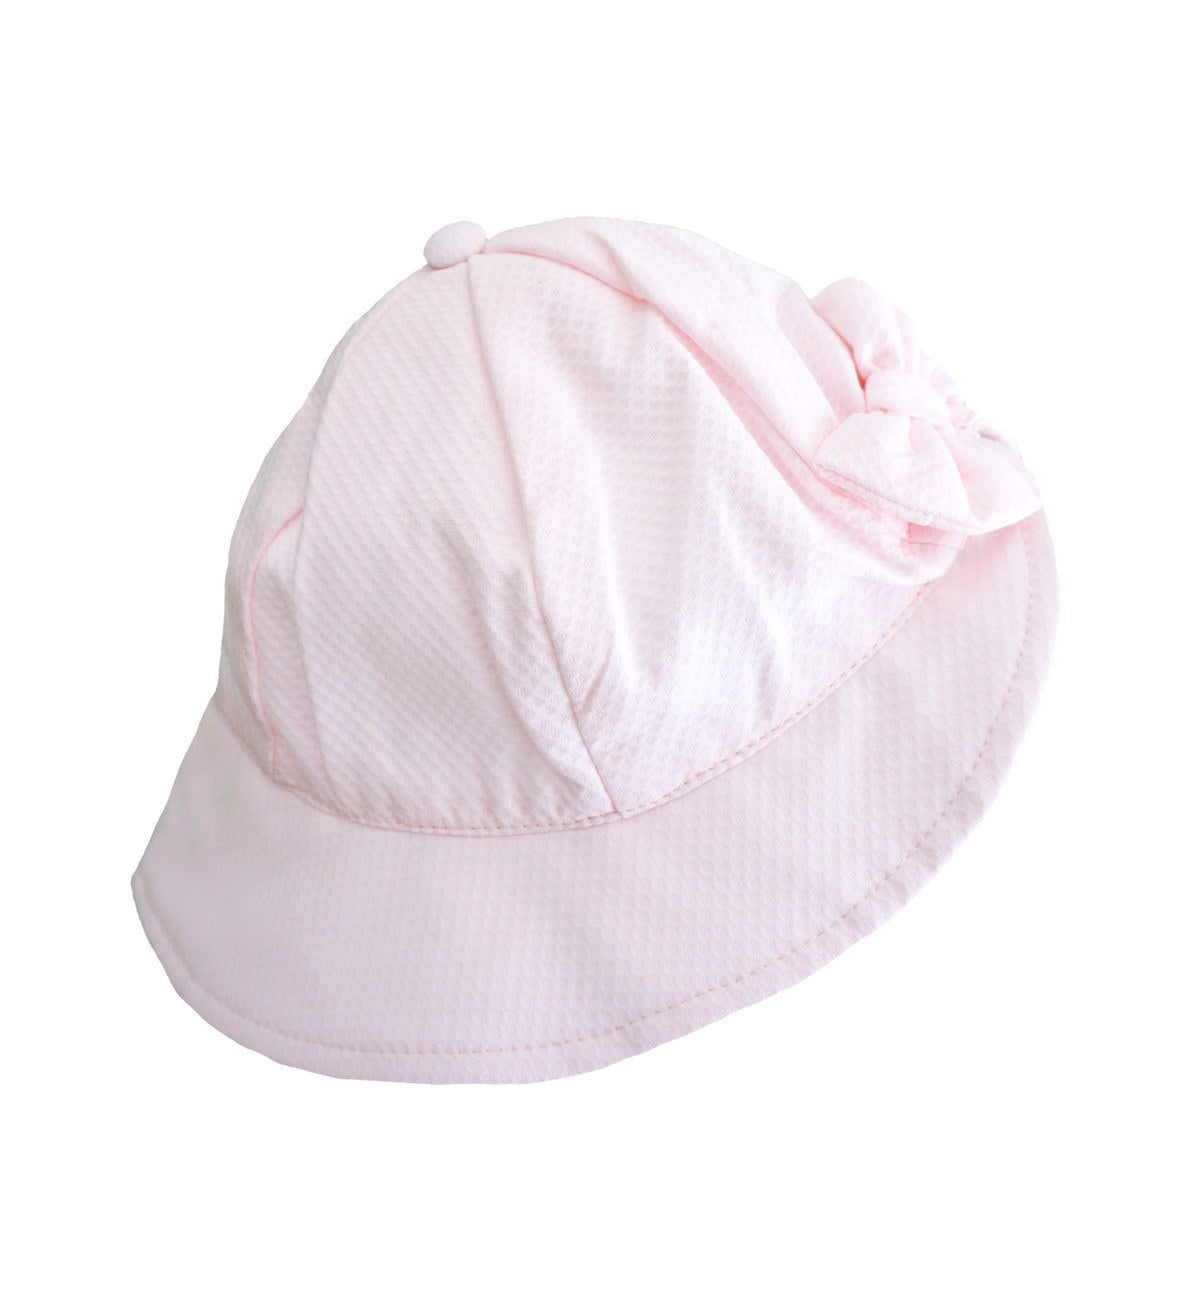 Spanish baby clothes | baby Hat | Pale pink honey pique hat |babymaC